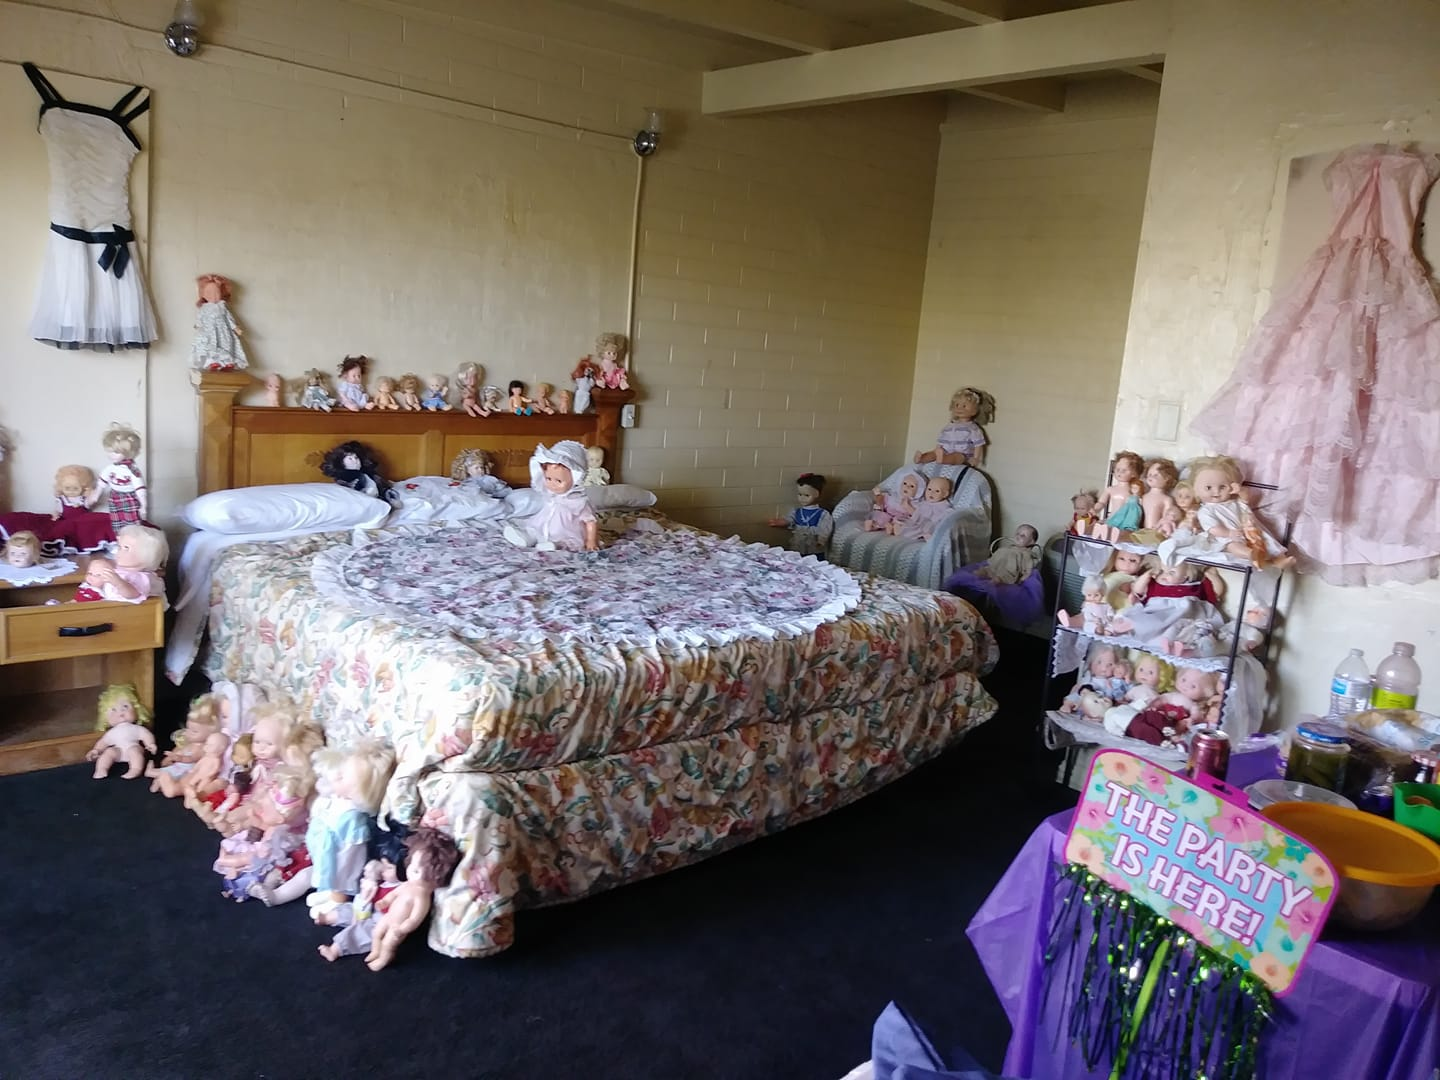 Writing is on the wall, and the bed, and the floor - Dolls. Dolls everywhere.